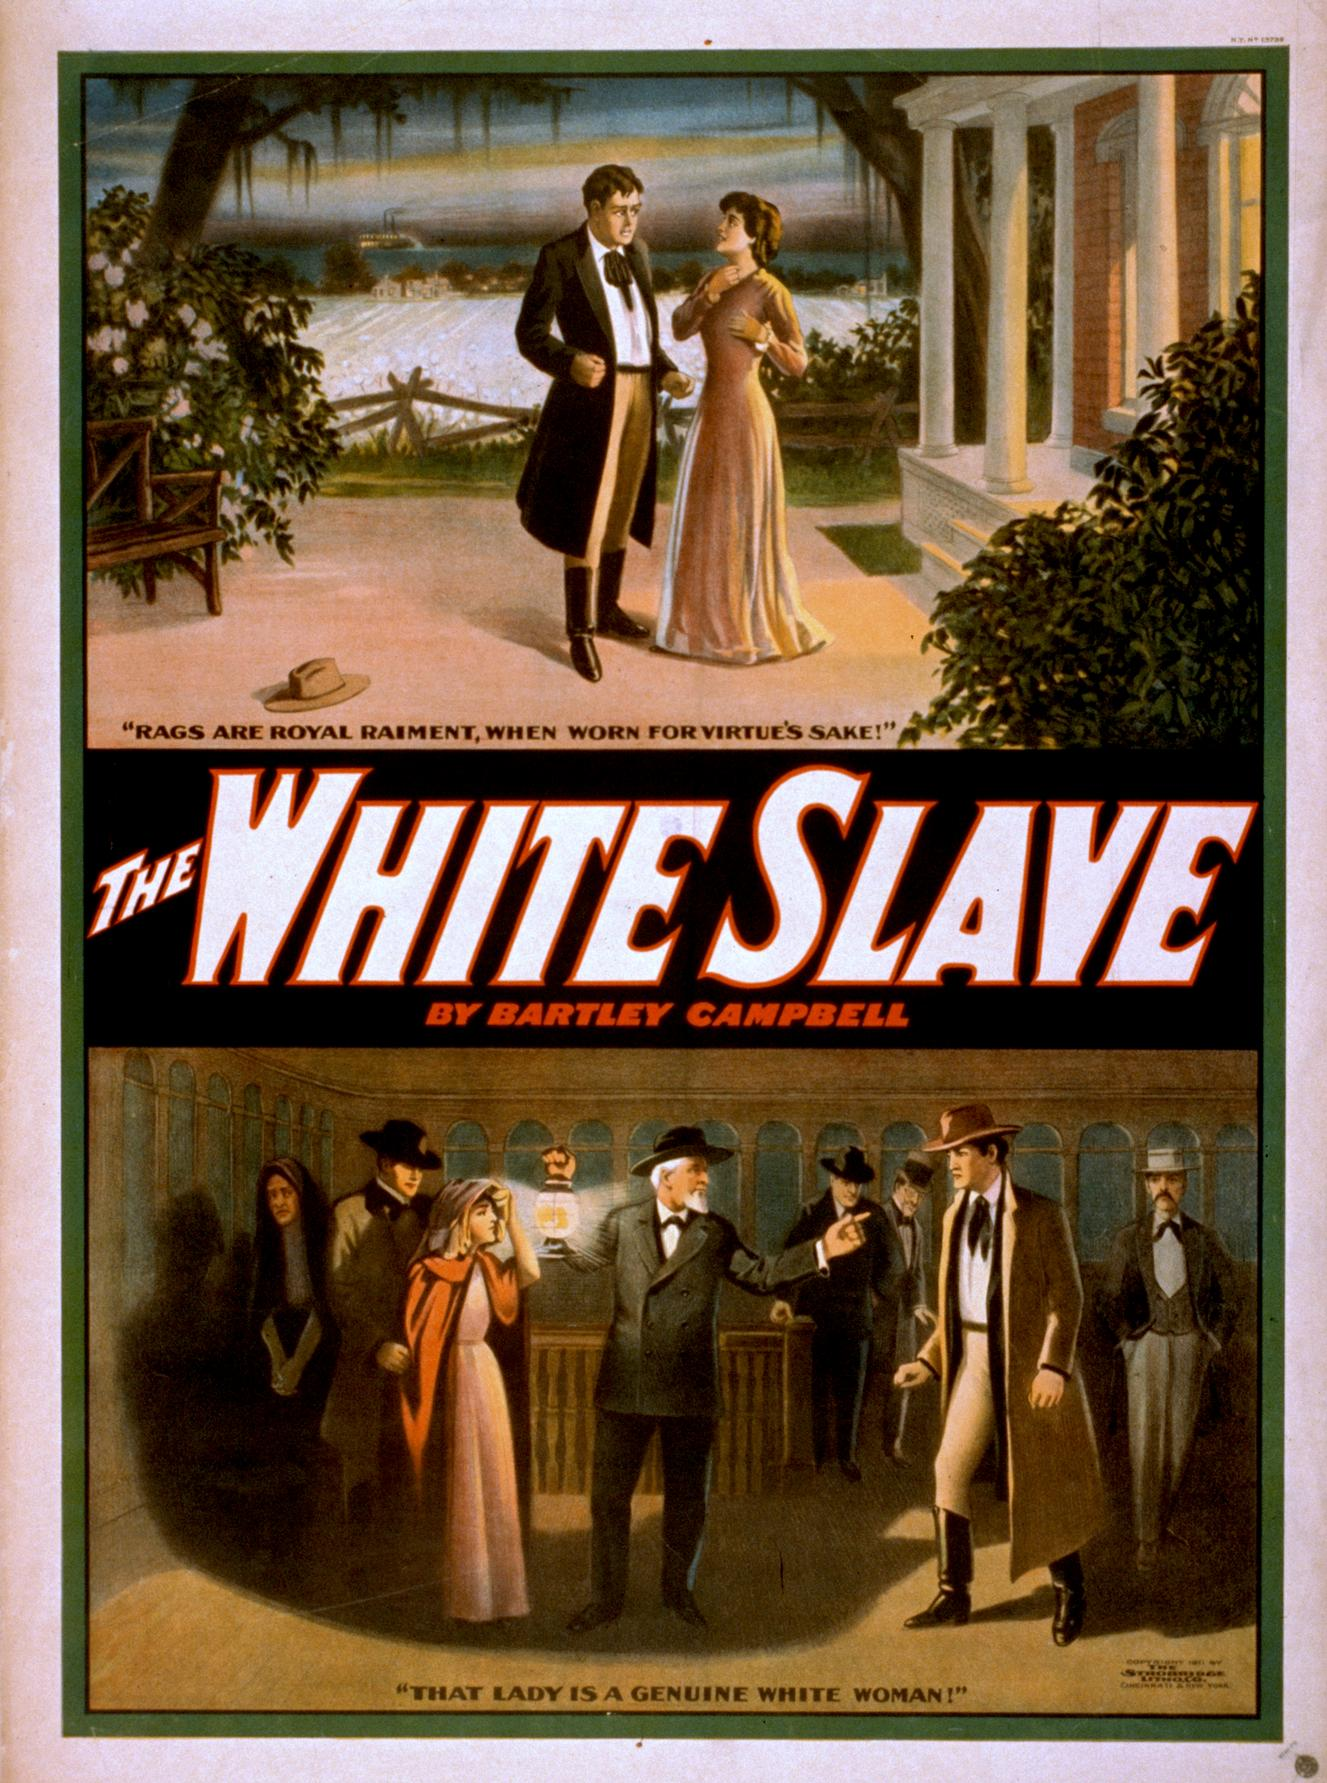 File:Bartley Campbell - The White Slave.jpg - Wikimedia Commons